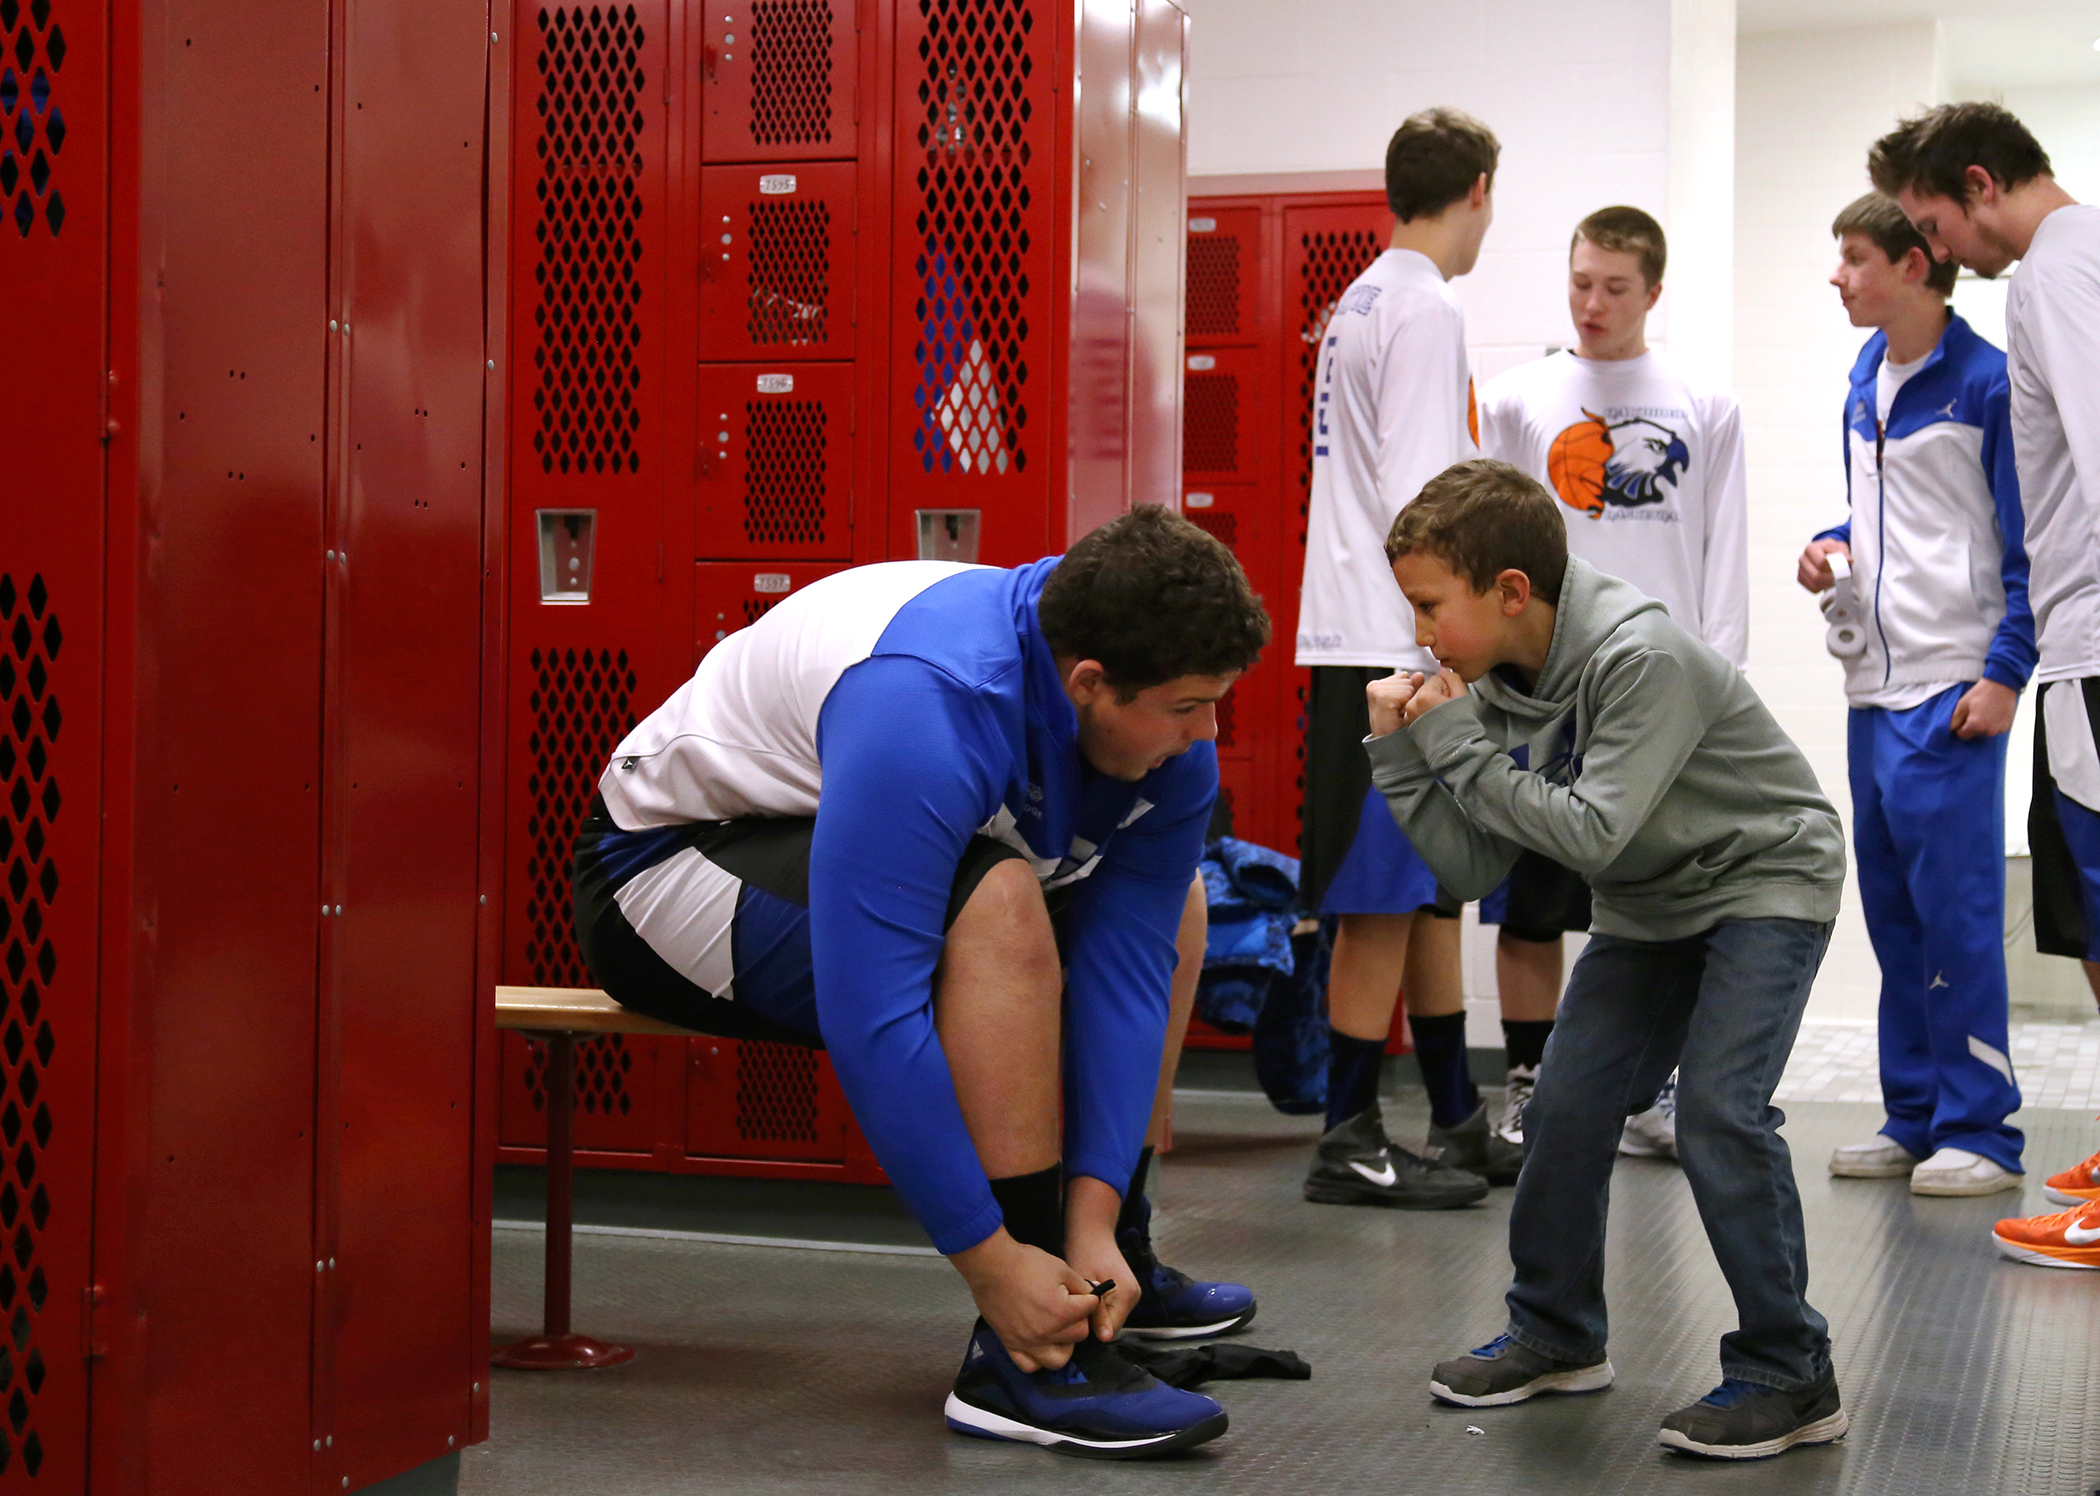 Peyton Ruel, 8, attempts to pump up Tony Curry of Oakridge as he ties his shoes in the locker room before their game against Spring Lake at Spring Lake High School Tuesday, Jan. 13, 2015. Spring Lake won 59-41.